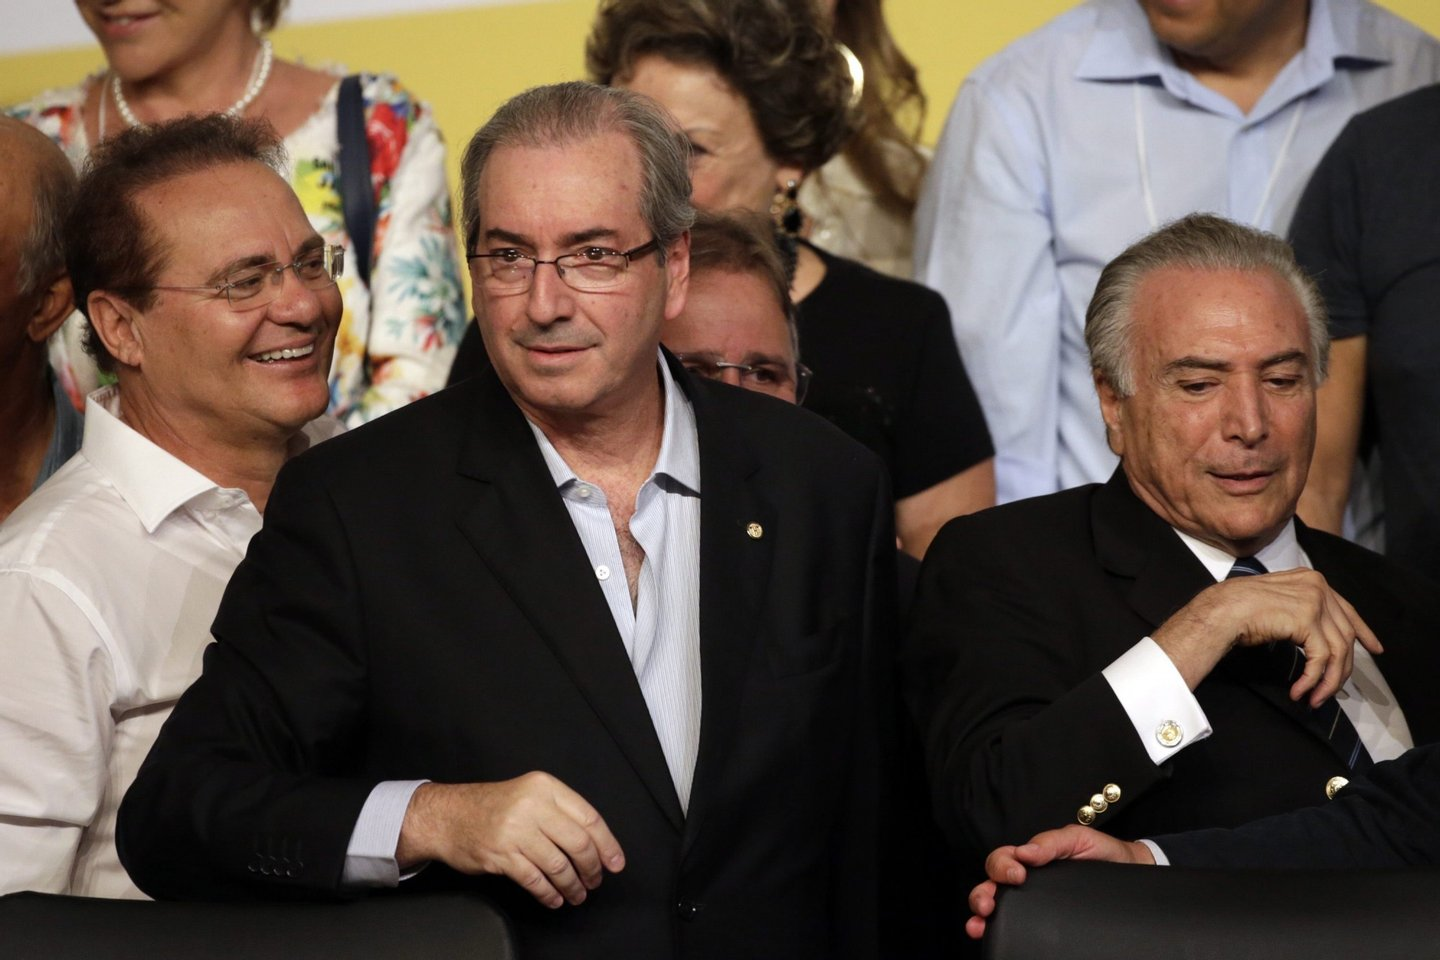 PMDB party postpones decision to leave coalition